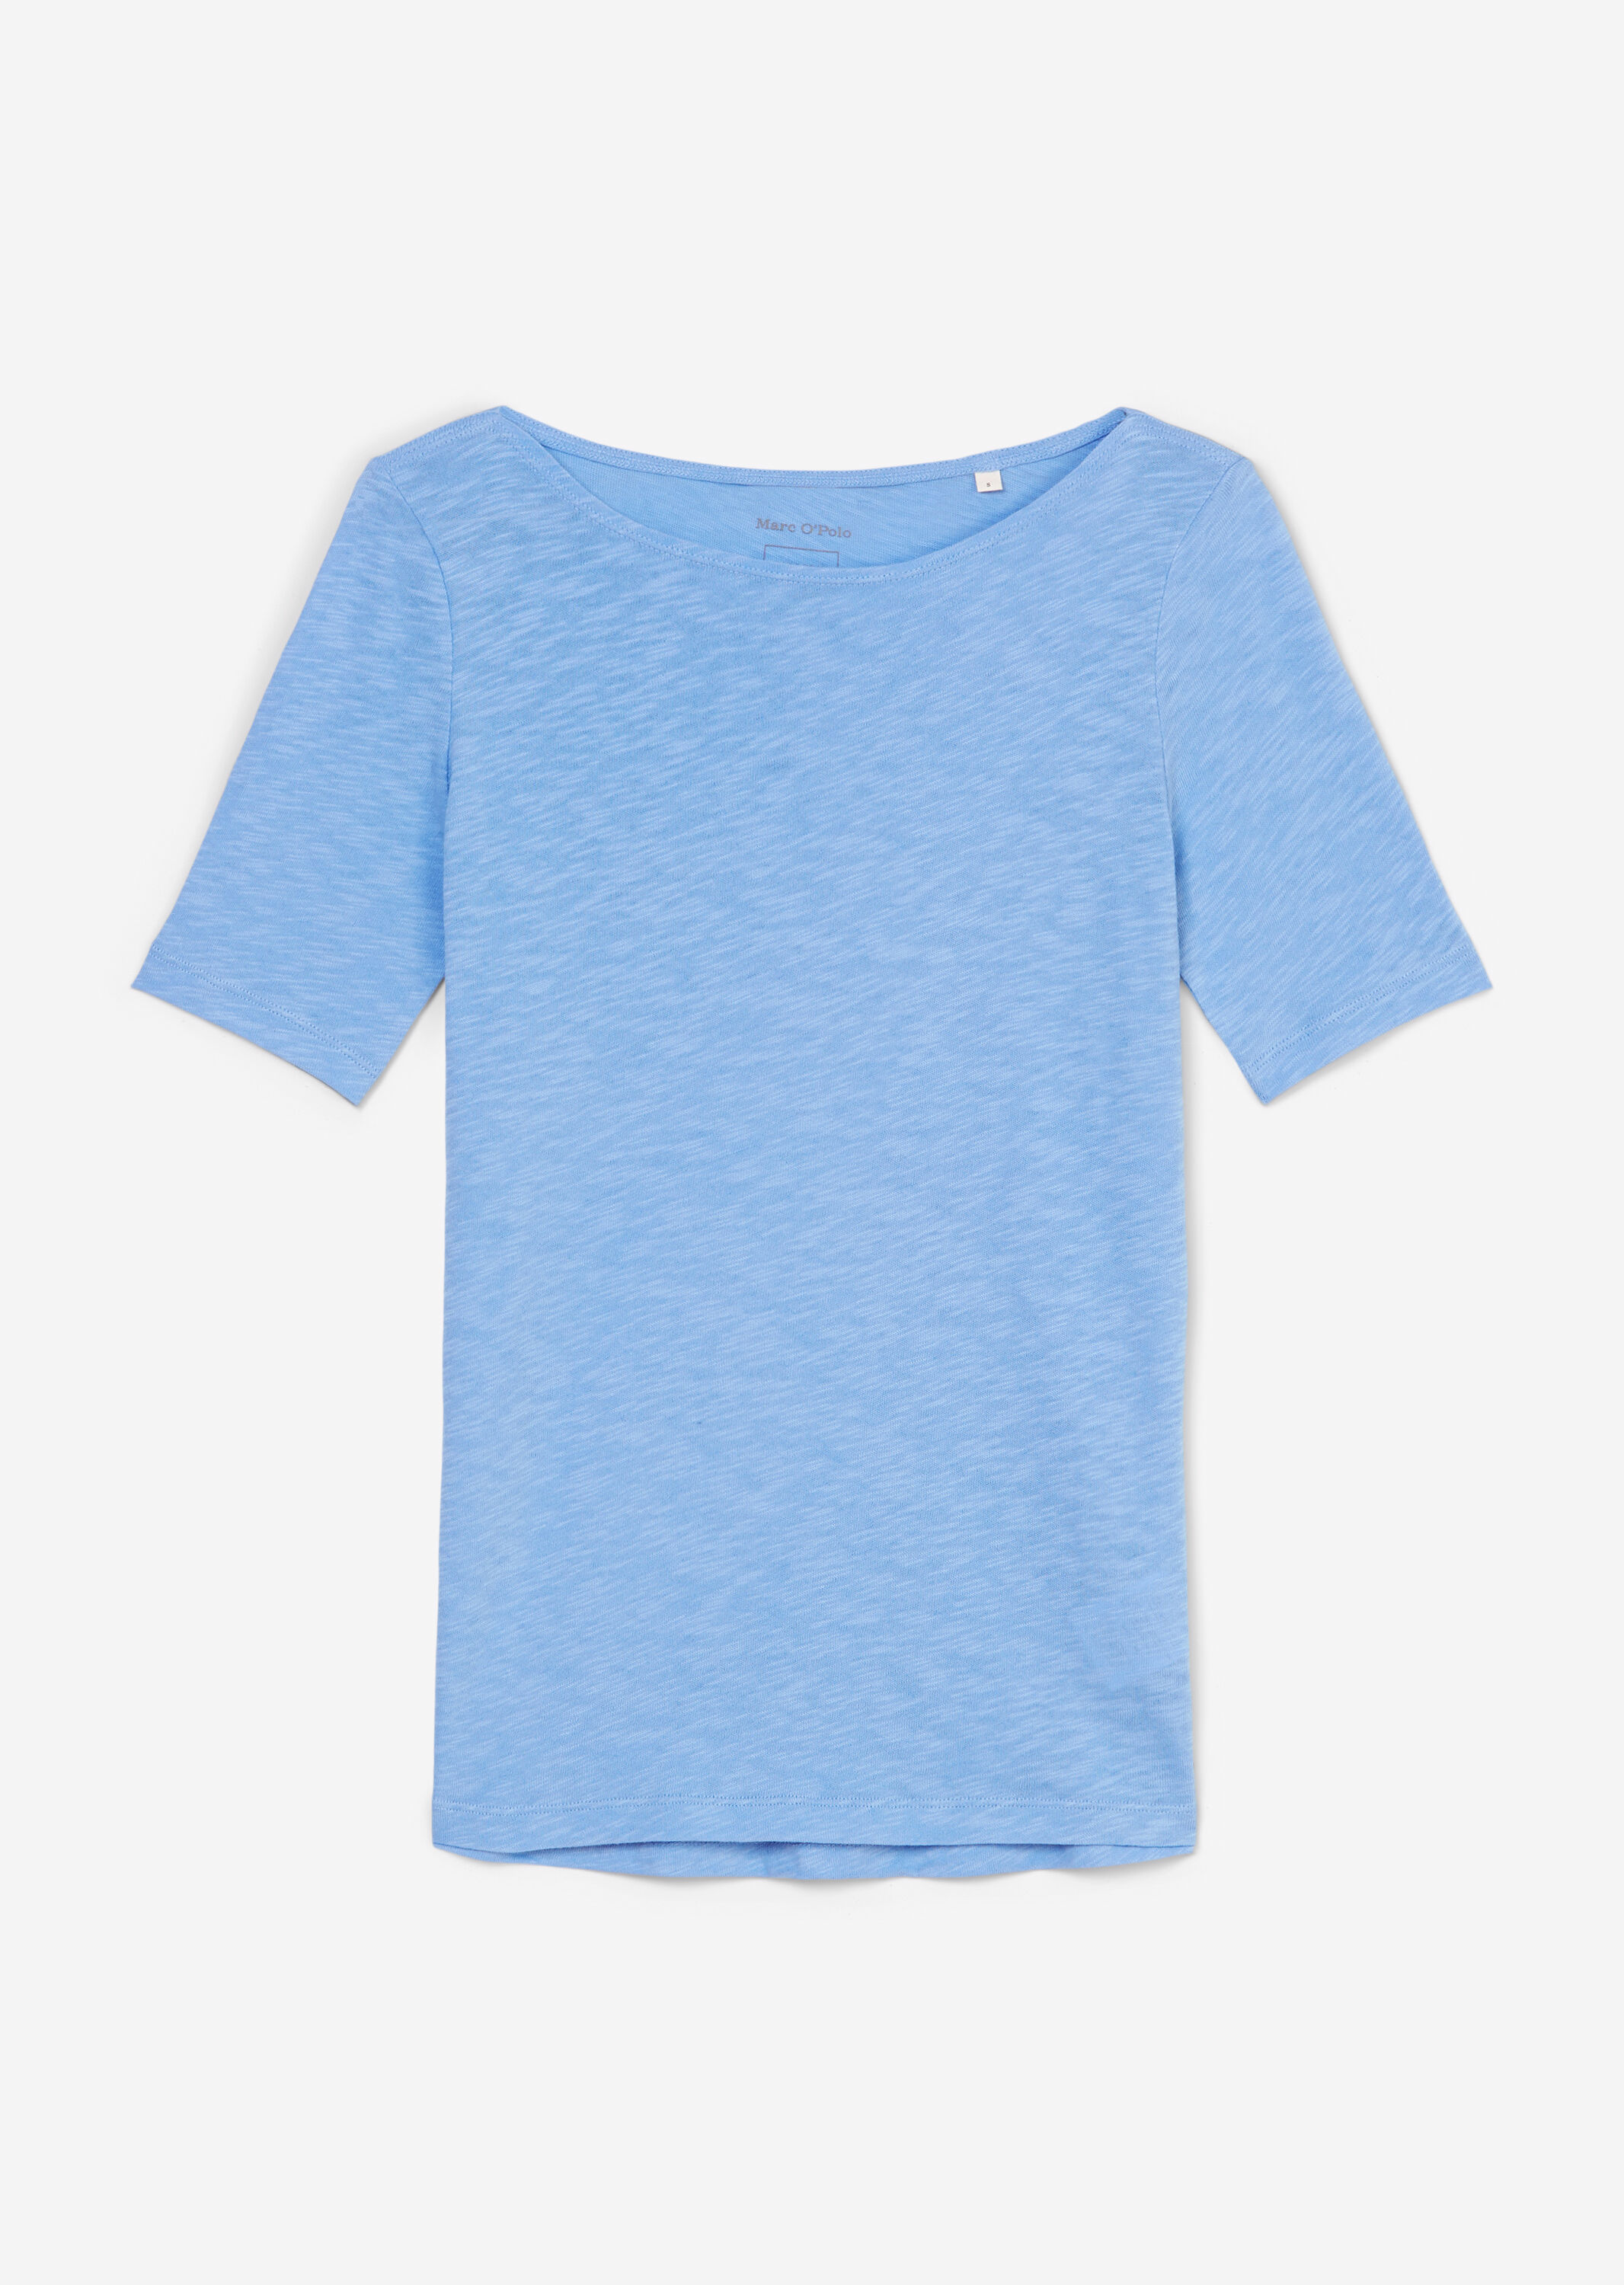 Marc O' Polo halbarm Shirt blau